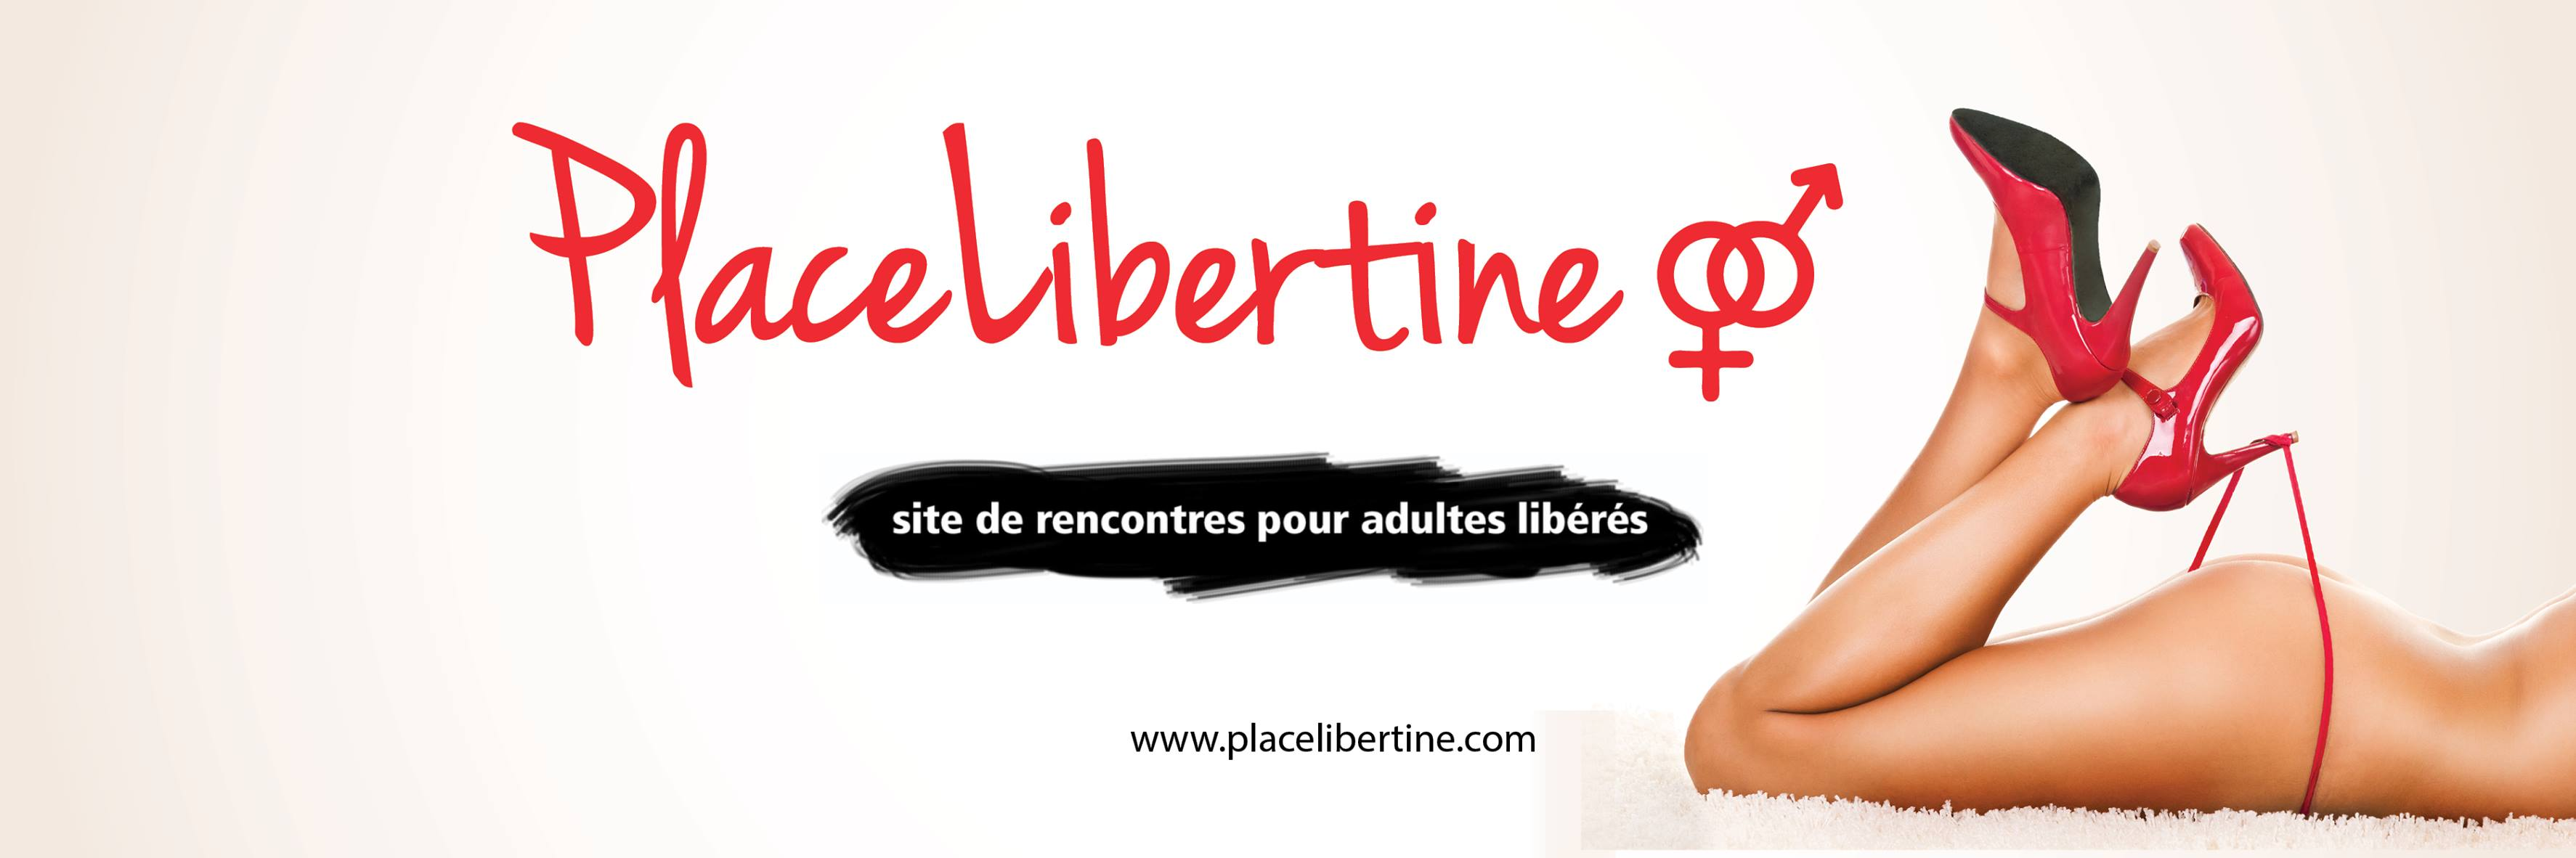 ce libertine rencontre adultes